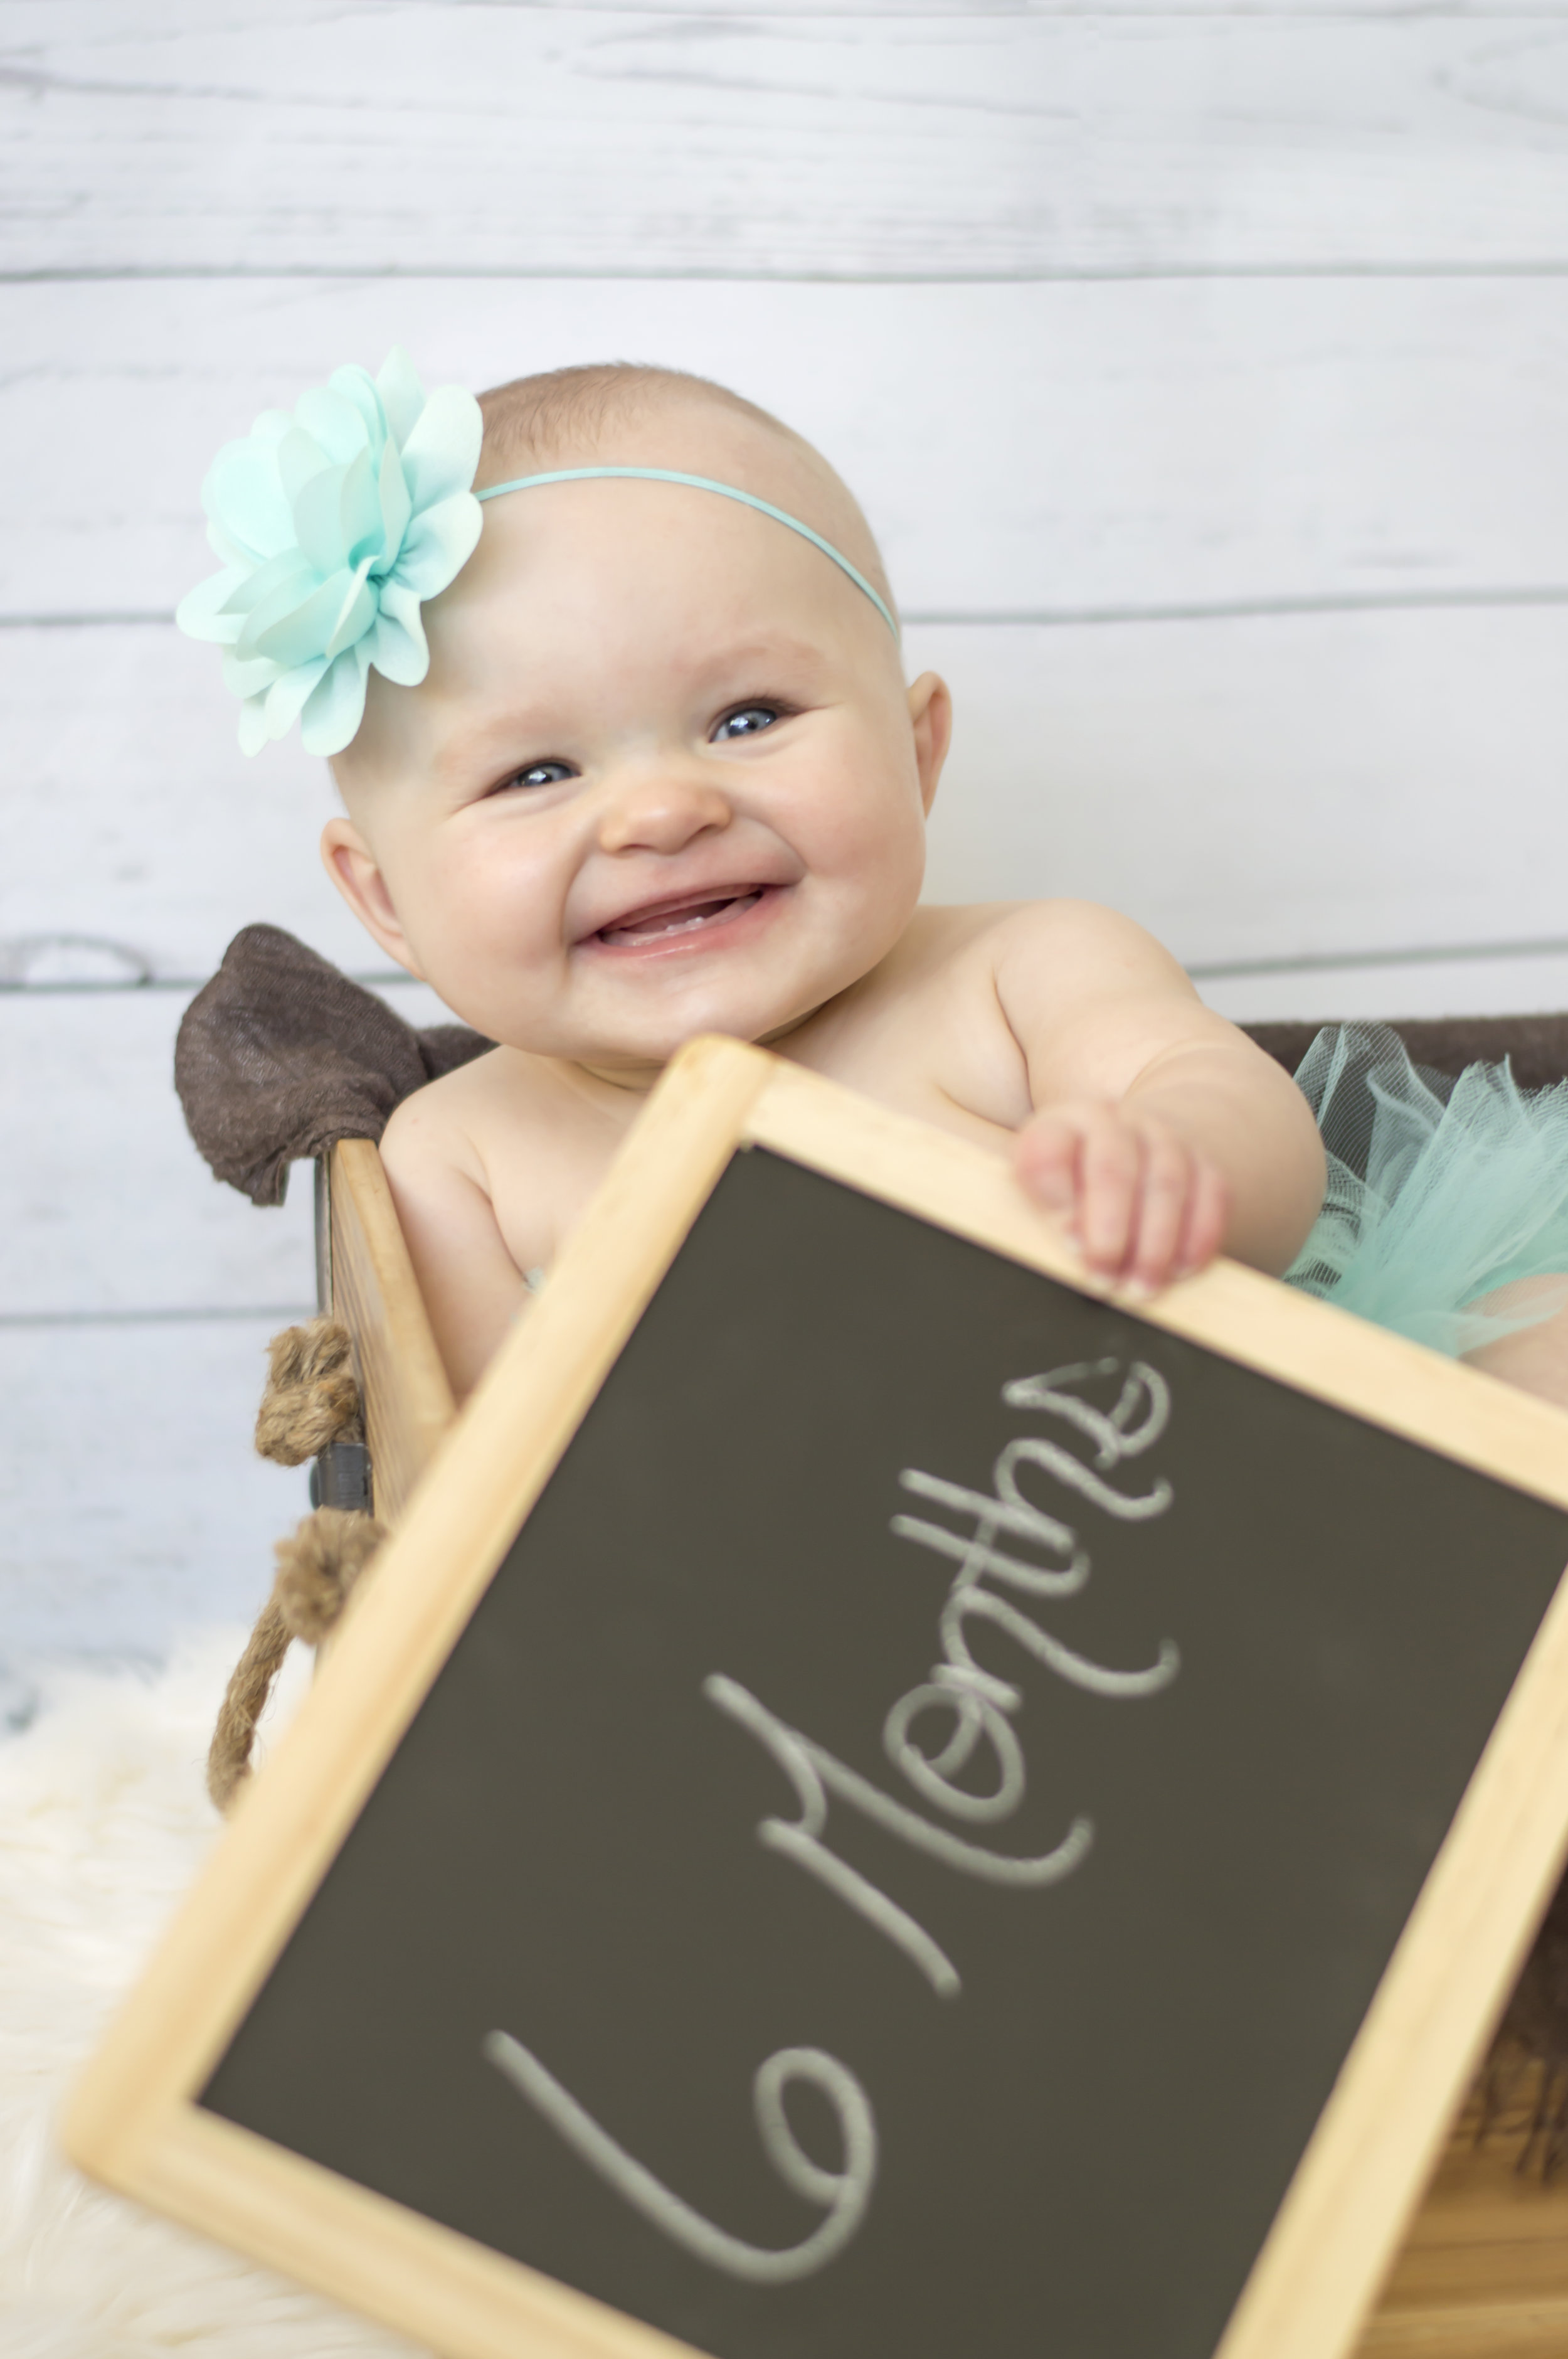 6 Month Baby Girl Photo in a Box